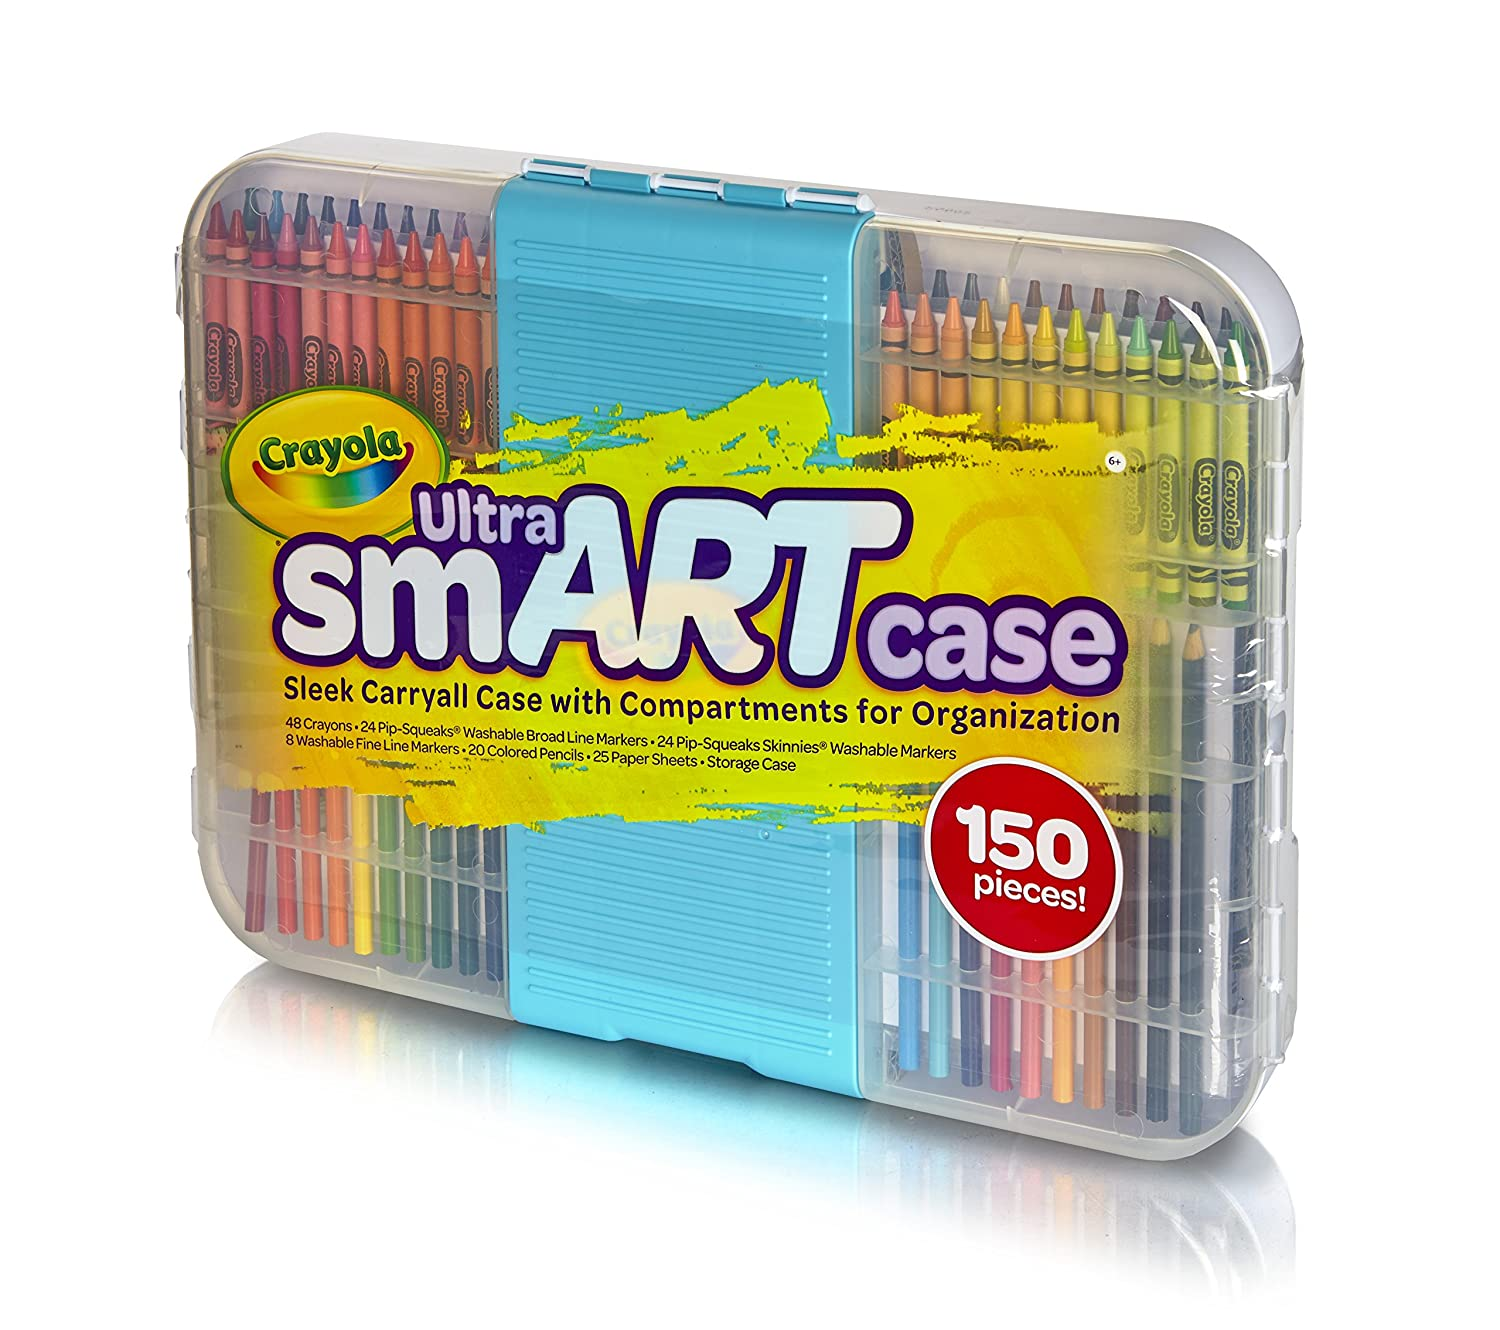 Amazon.com: Crayola Ultra Smart Case, Art Tool Kit, Cool Case with ...